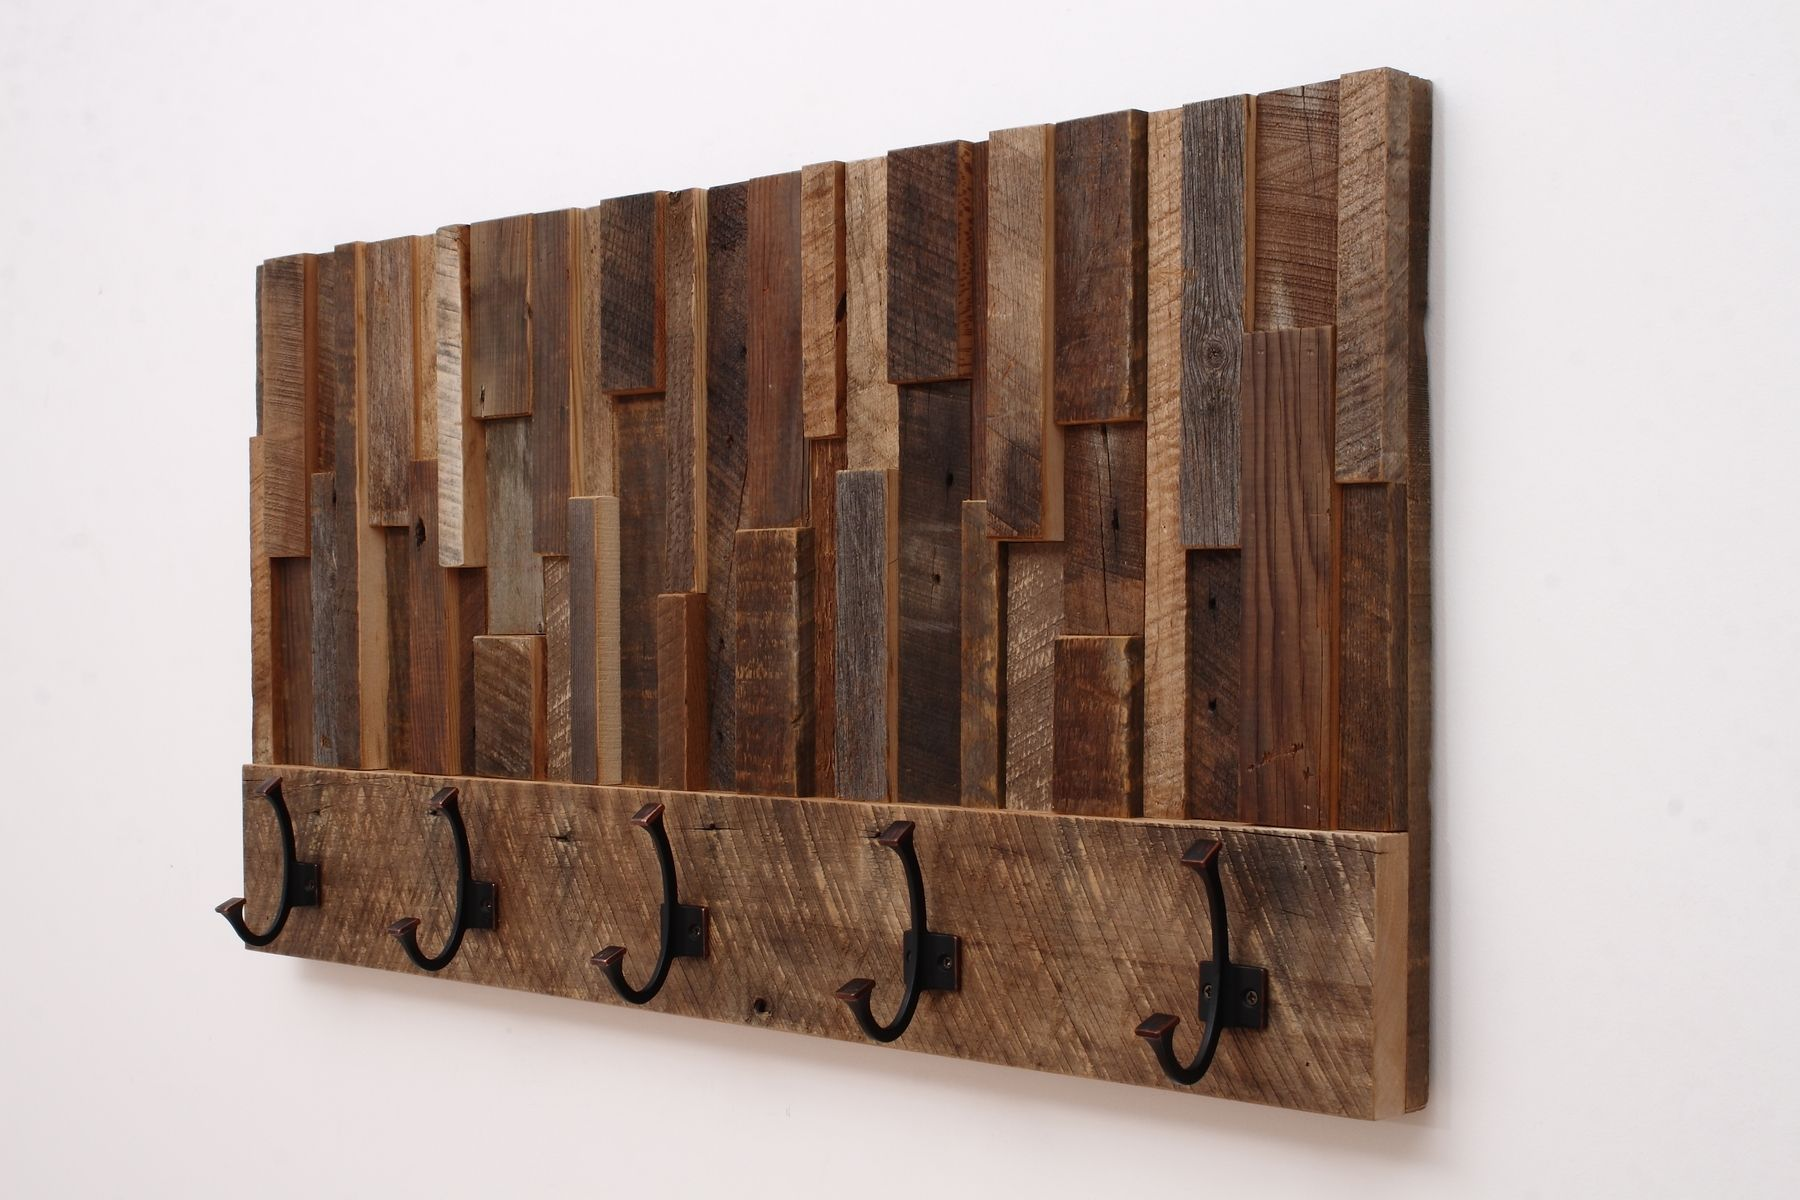 Custom Made Reclaimed Wood Art Coat Rack 36x18 5x4 By